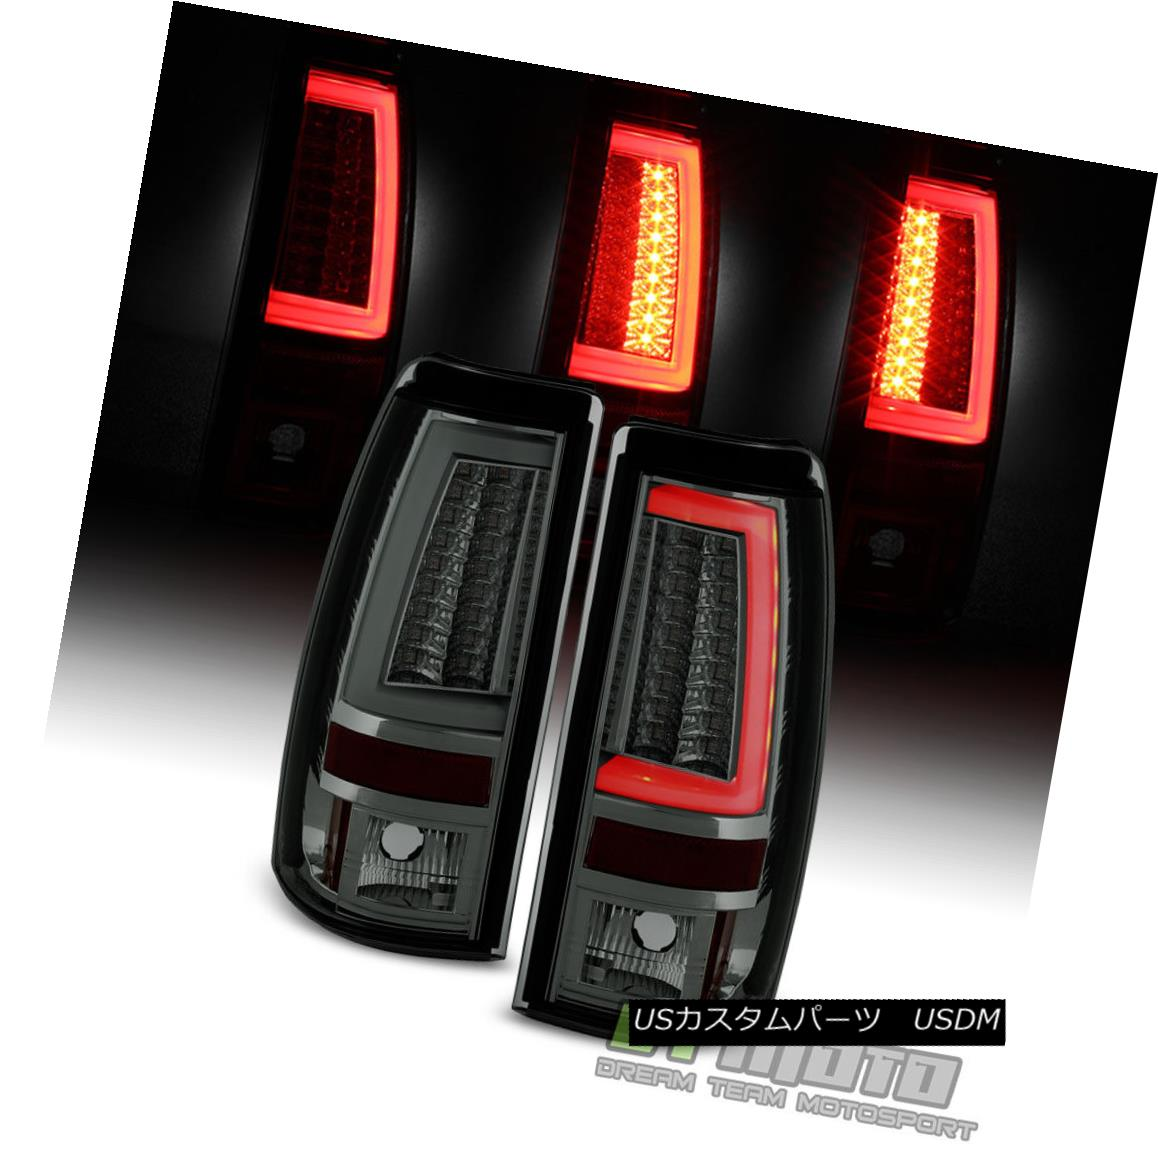 テールライト Smoke 1999-2002 Chevy Silverado 1500 99-06 GMC Sierra LED Tube Tail Lights Lamps Smoke 1999-2002 Chevy Silverado 1500 99-06 GMC Sierra LEDチューブテールライトランプ